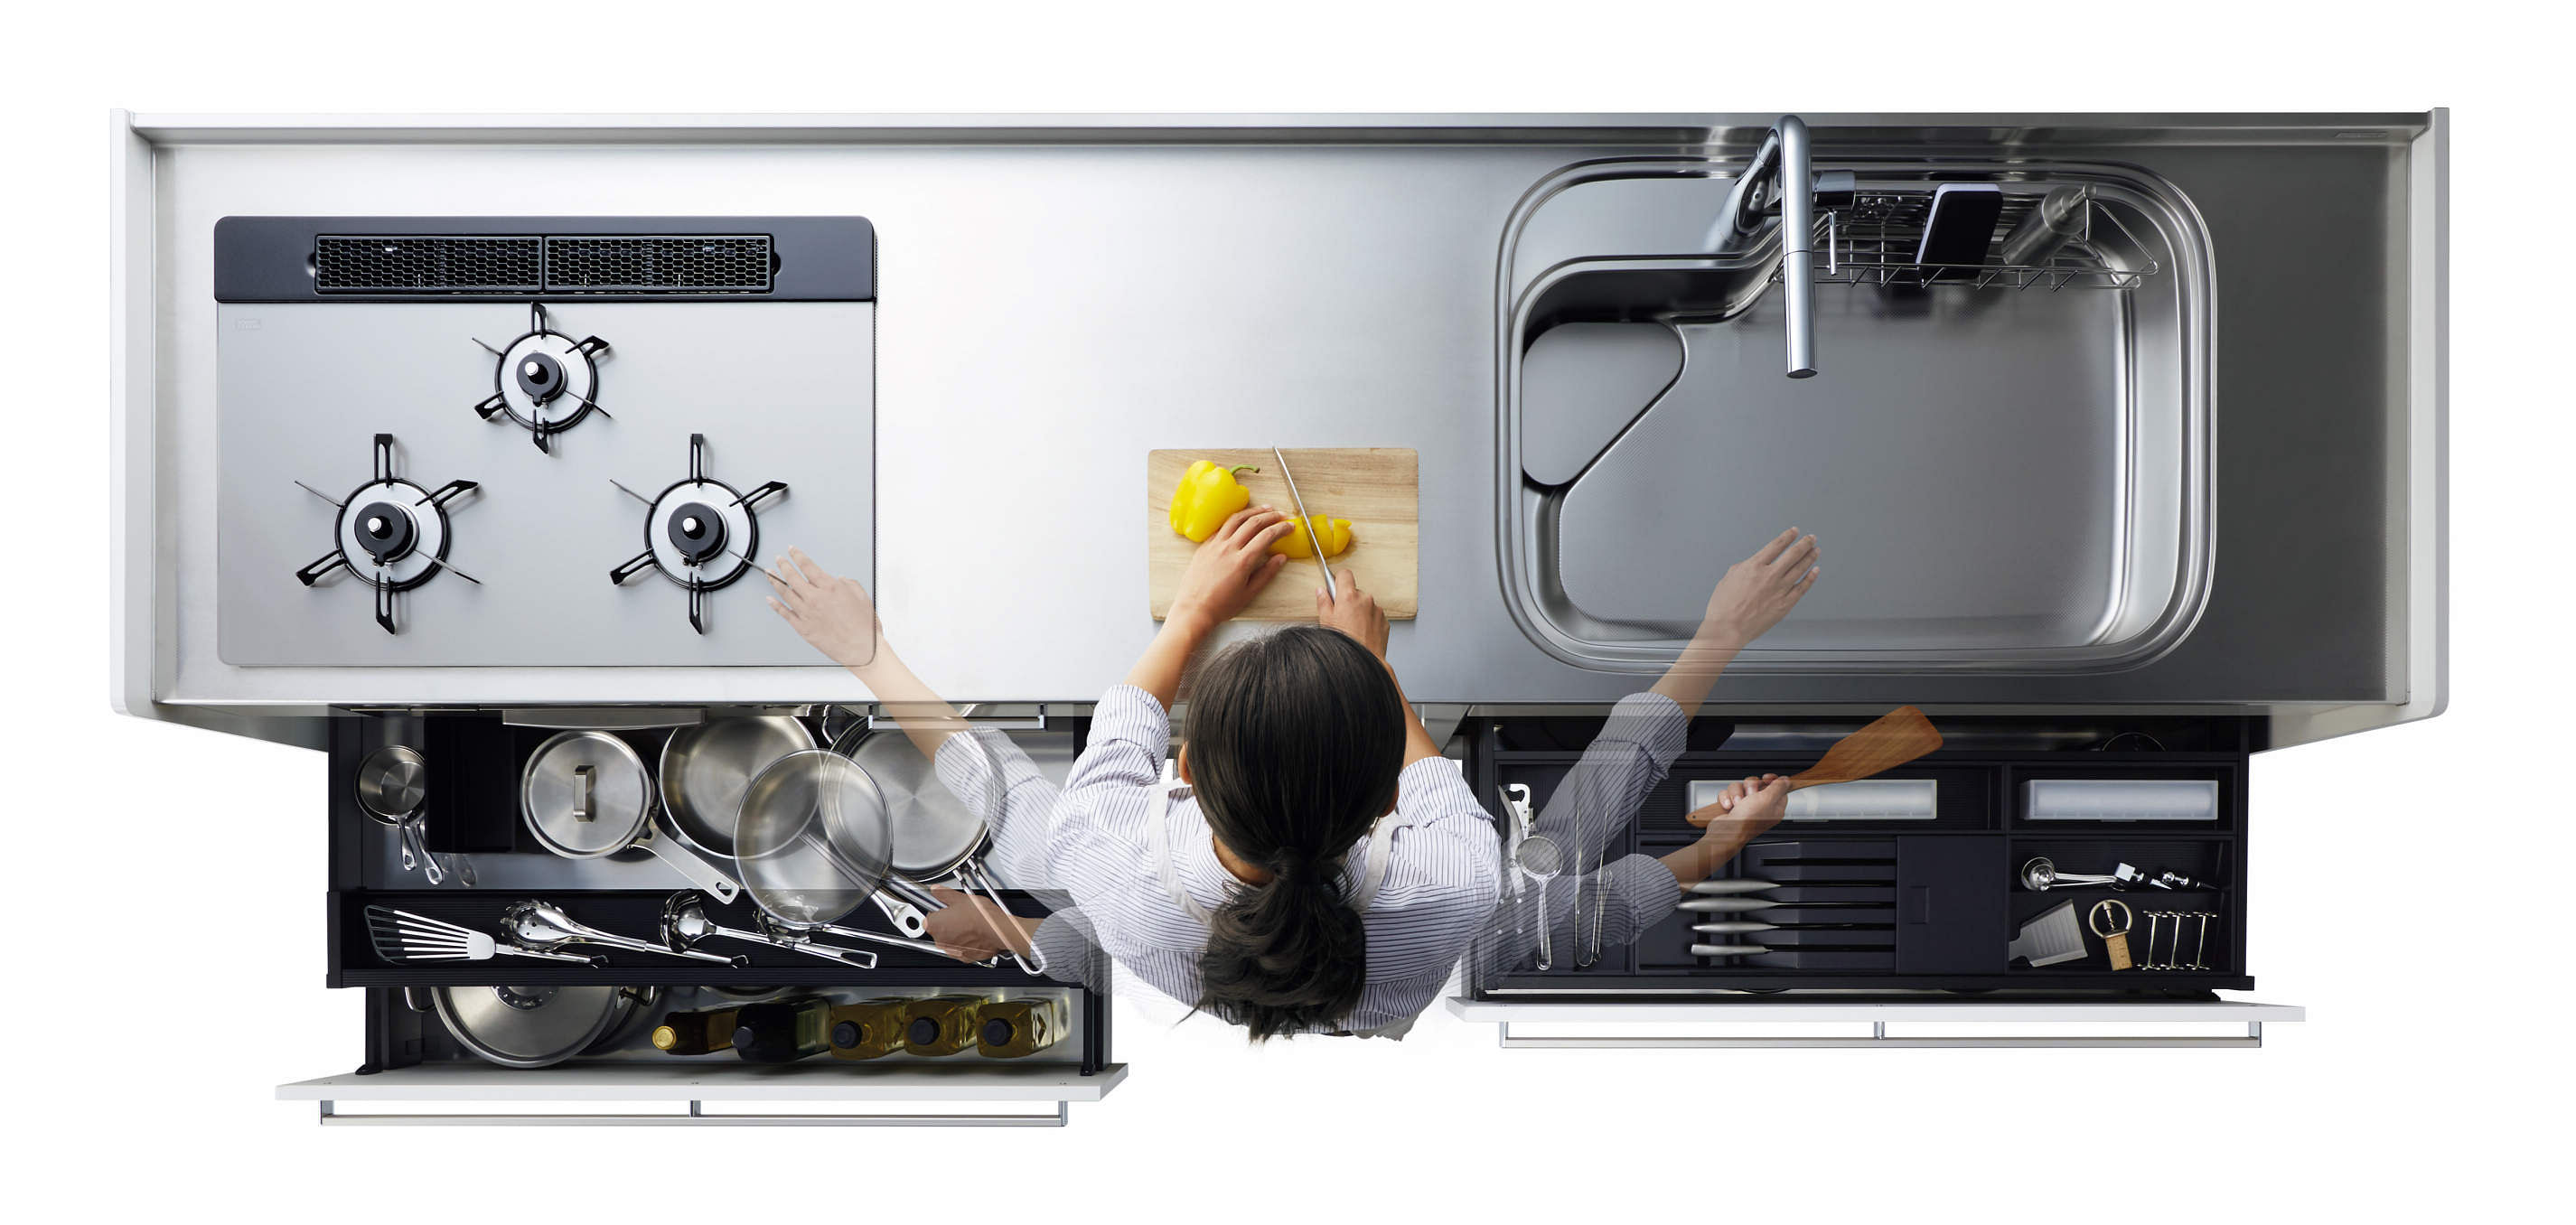 Increase Storage In Your Kitchen With The Right Mix Of